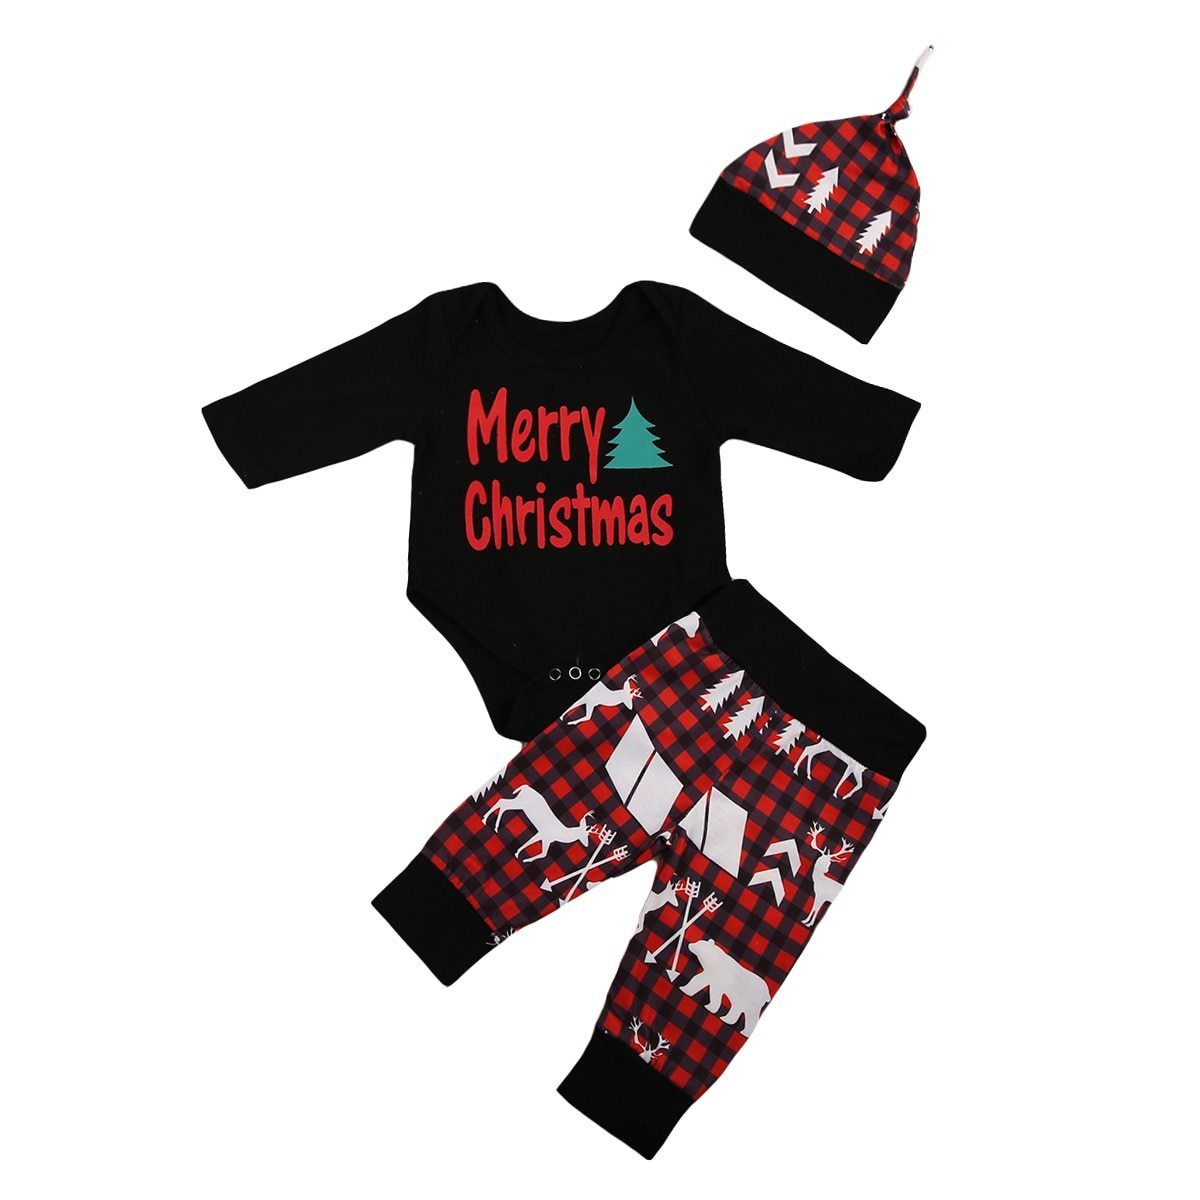 Merry Christmas Clothing Set 3Pcs